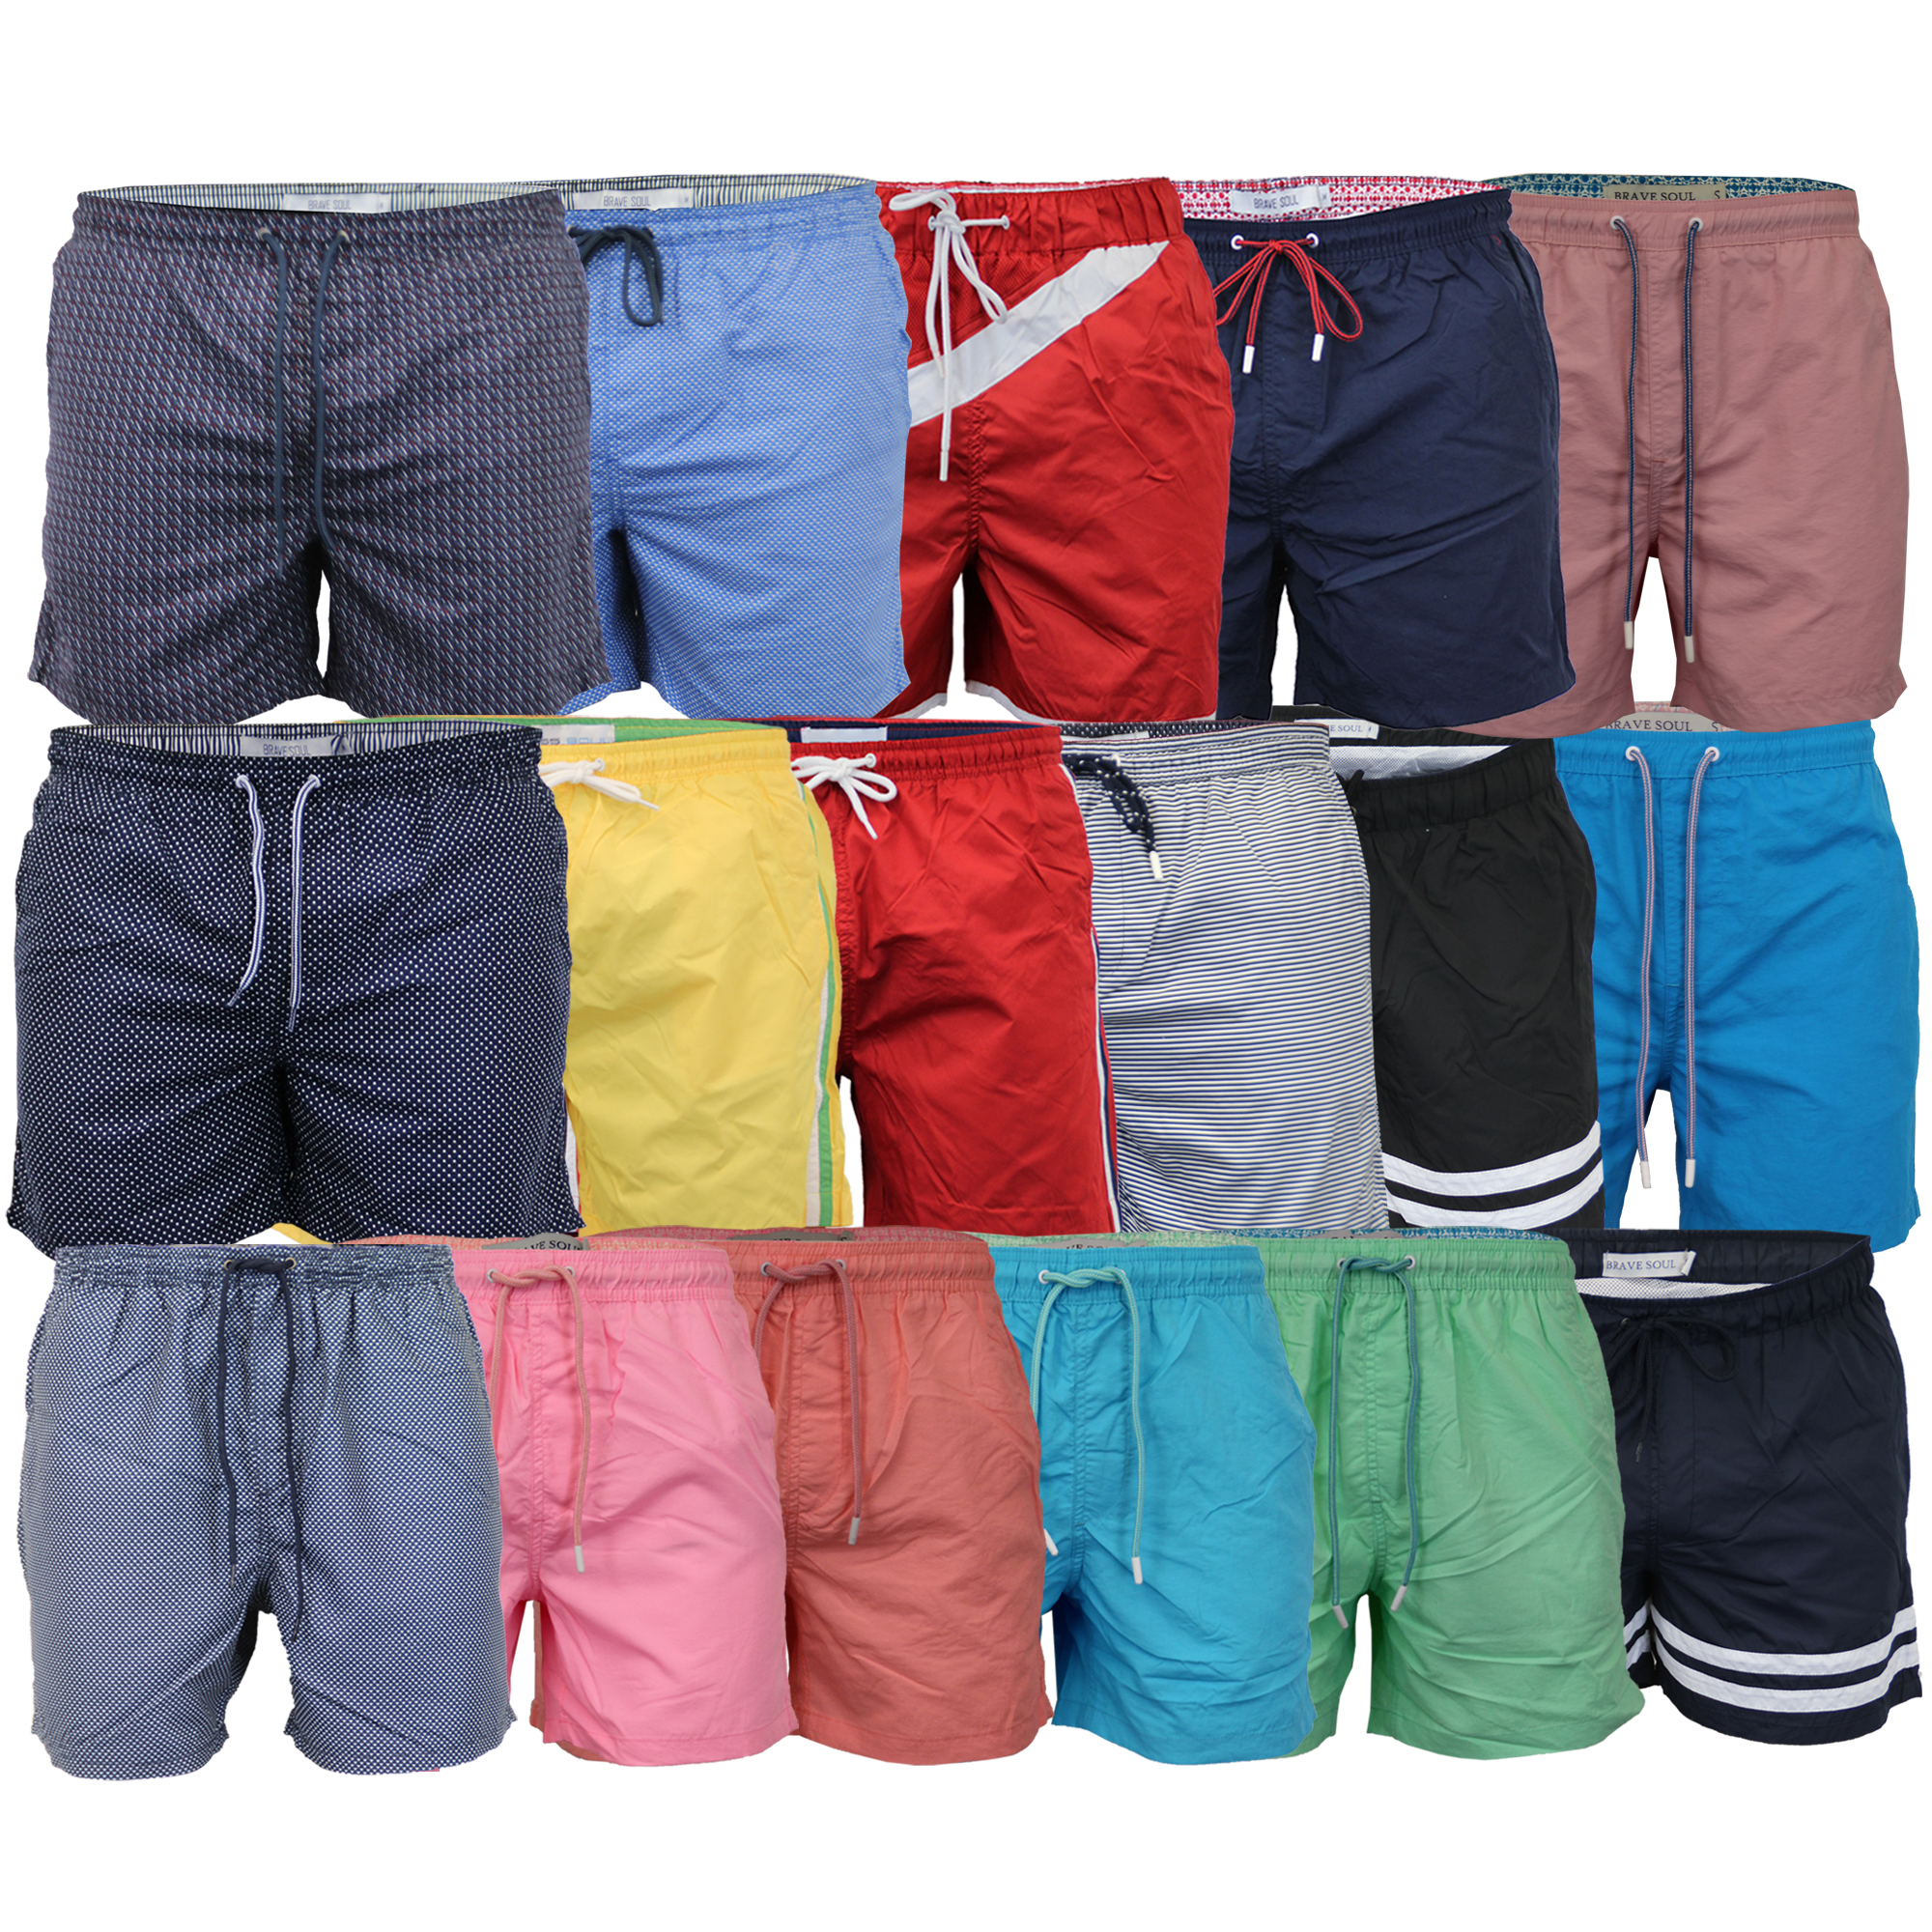 Mens-Swim-Board-Shorts-By-Brave-Soul-Mesh-Lined-New thumbnail 5